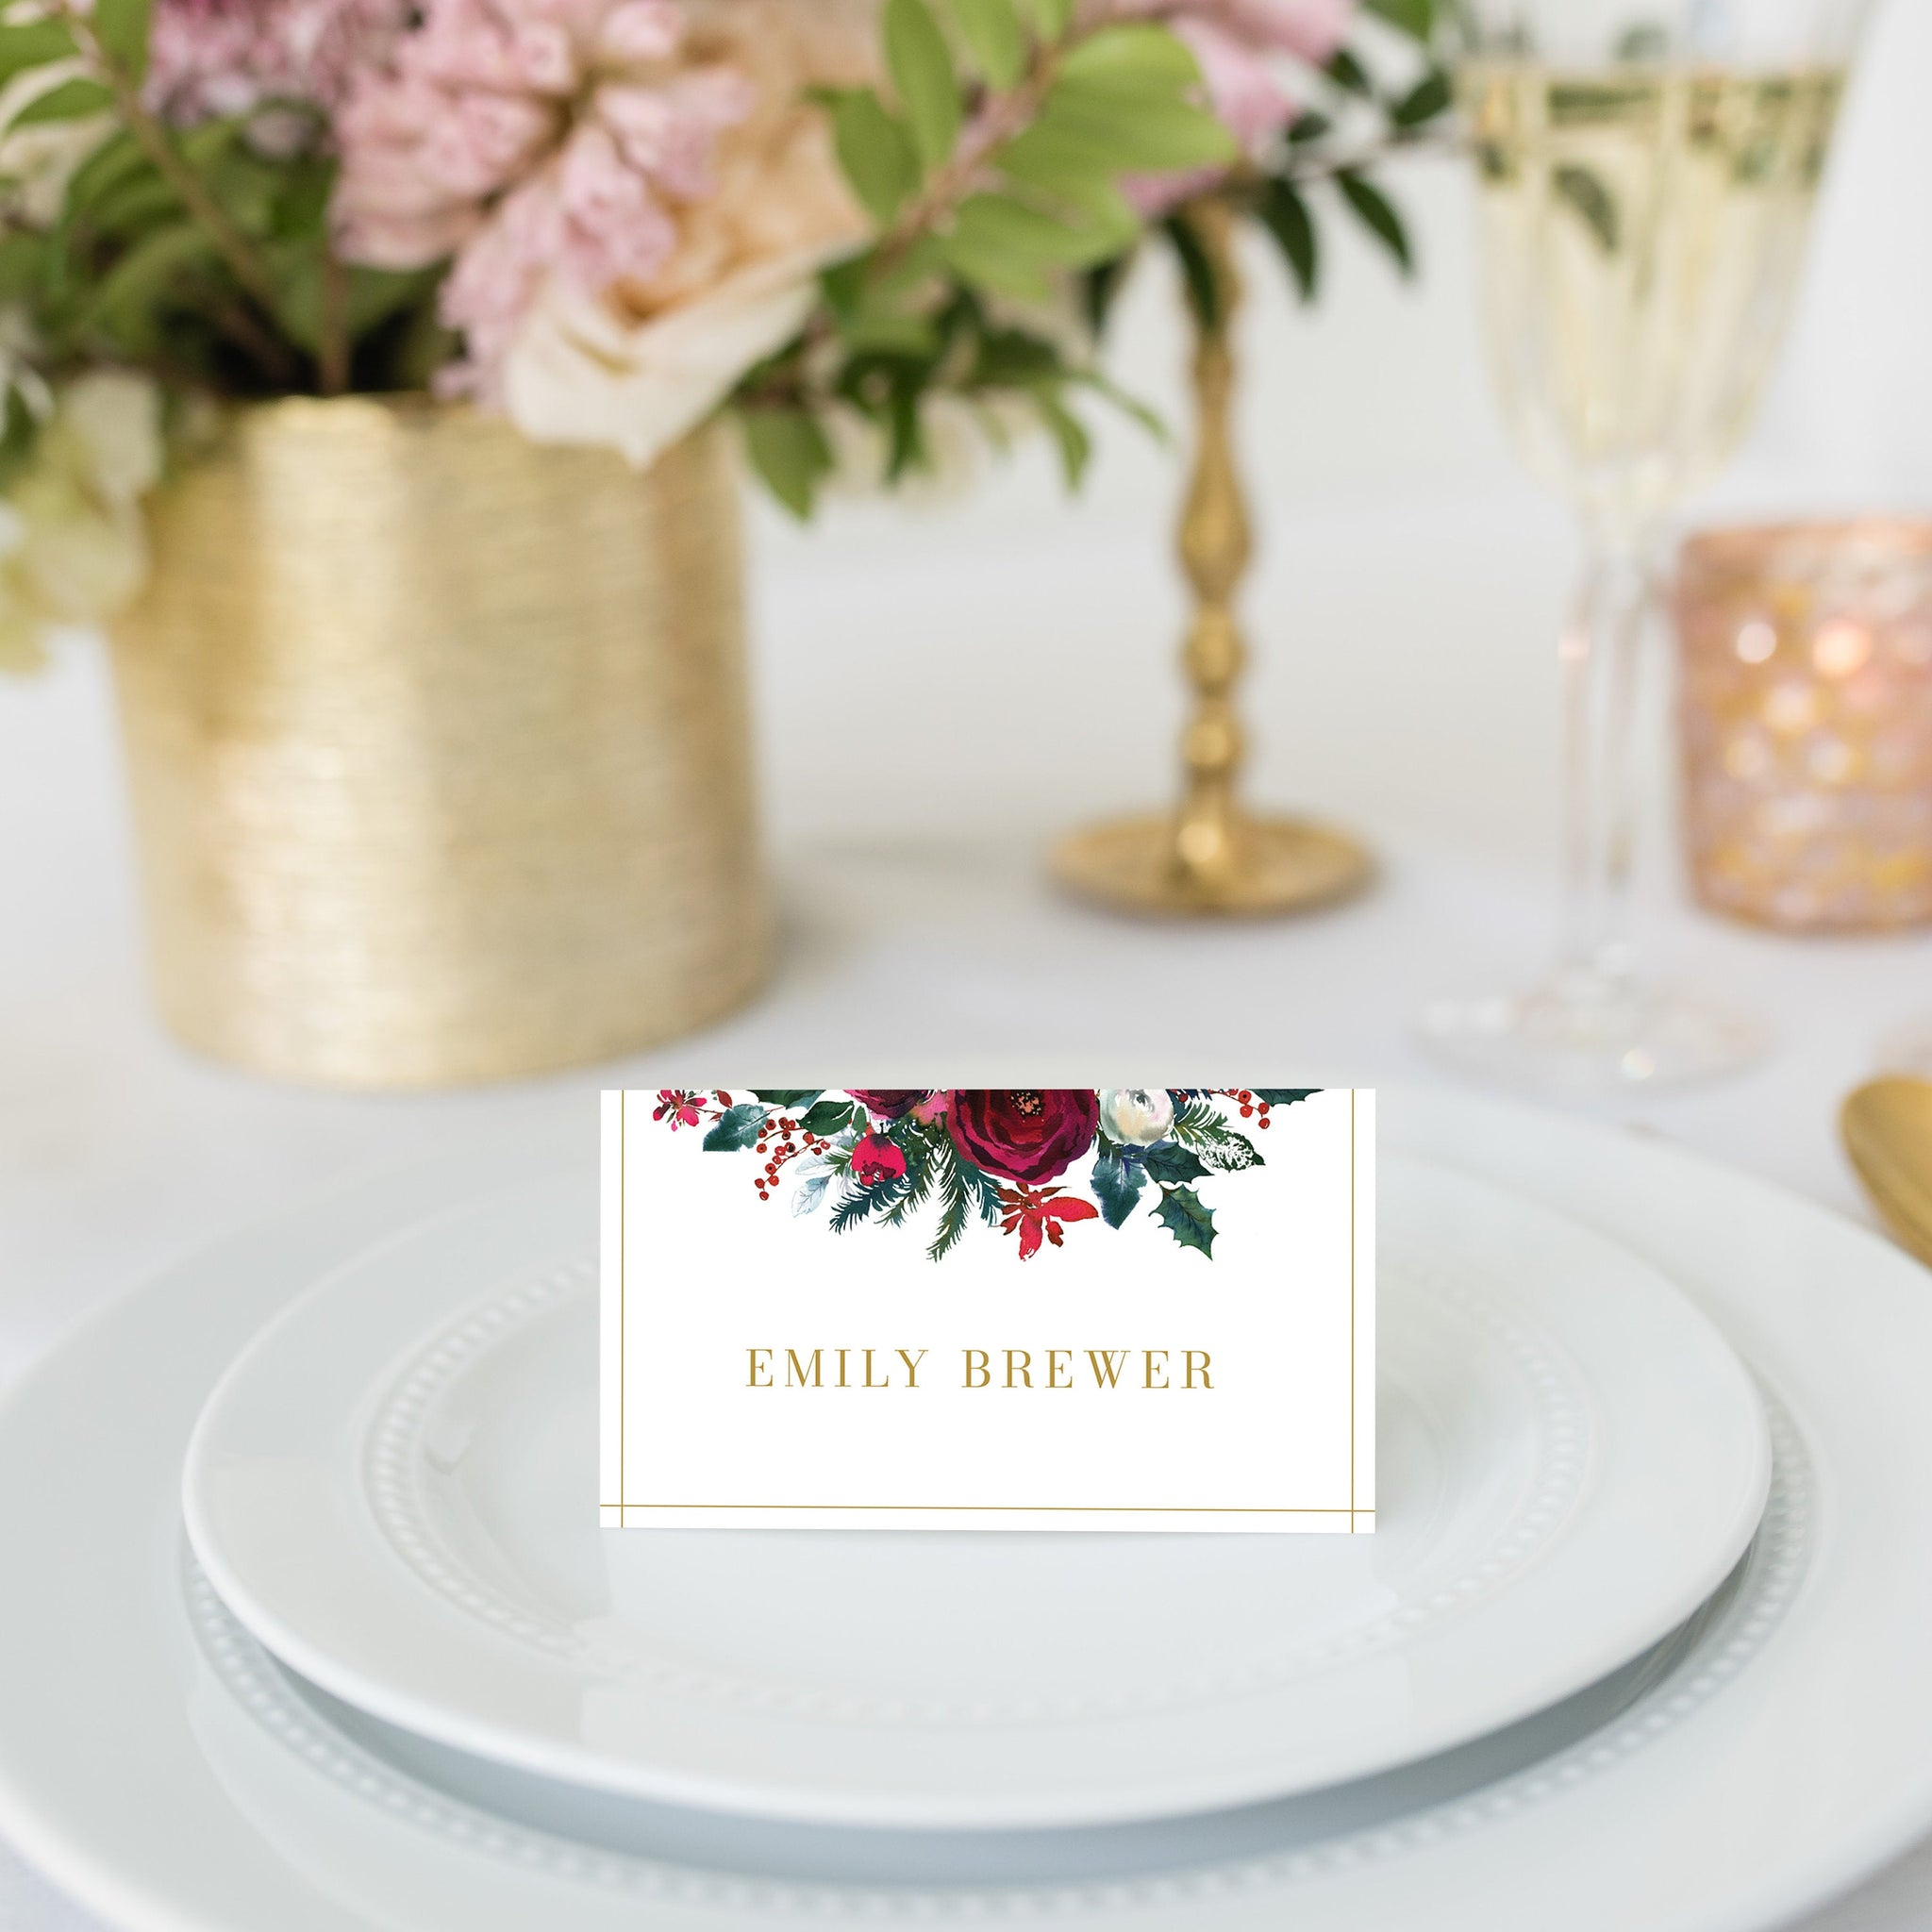 Christmas Place Card Template, Christmas Table Decor, Christmas Table Decorations, Christmas Dinner Decor, Editable DIGITAL DOWNLOAD - CG100 - @PlumPolkaDot